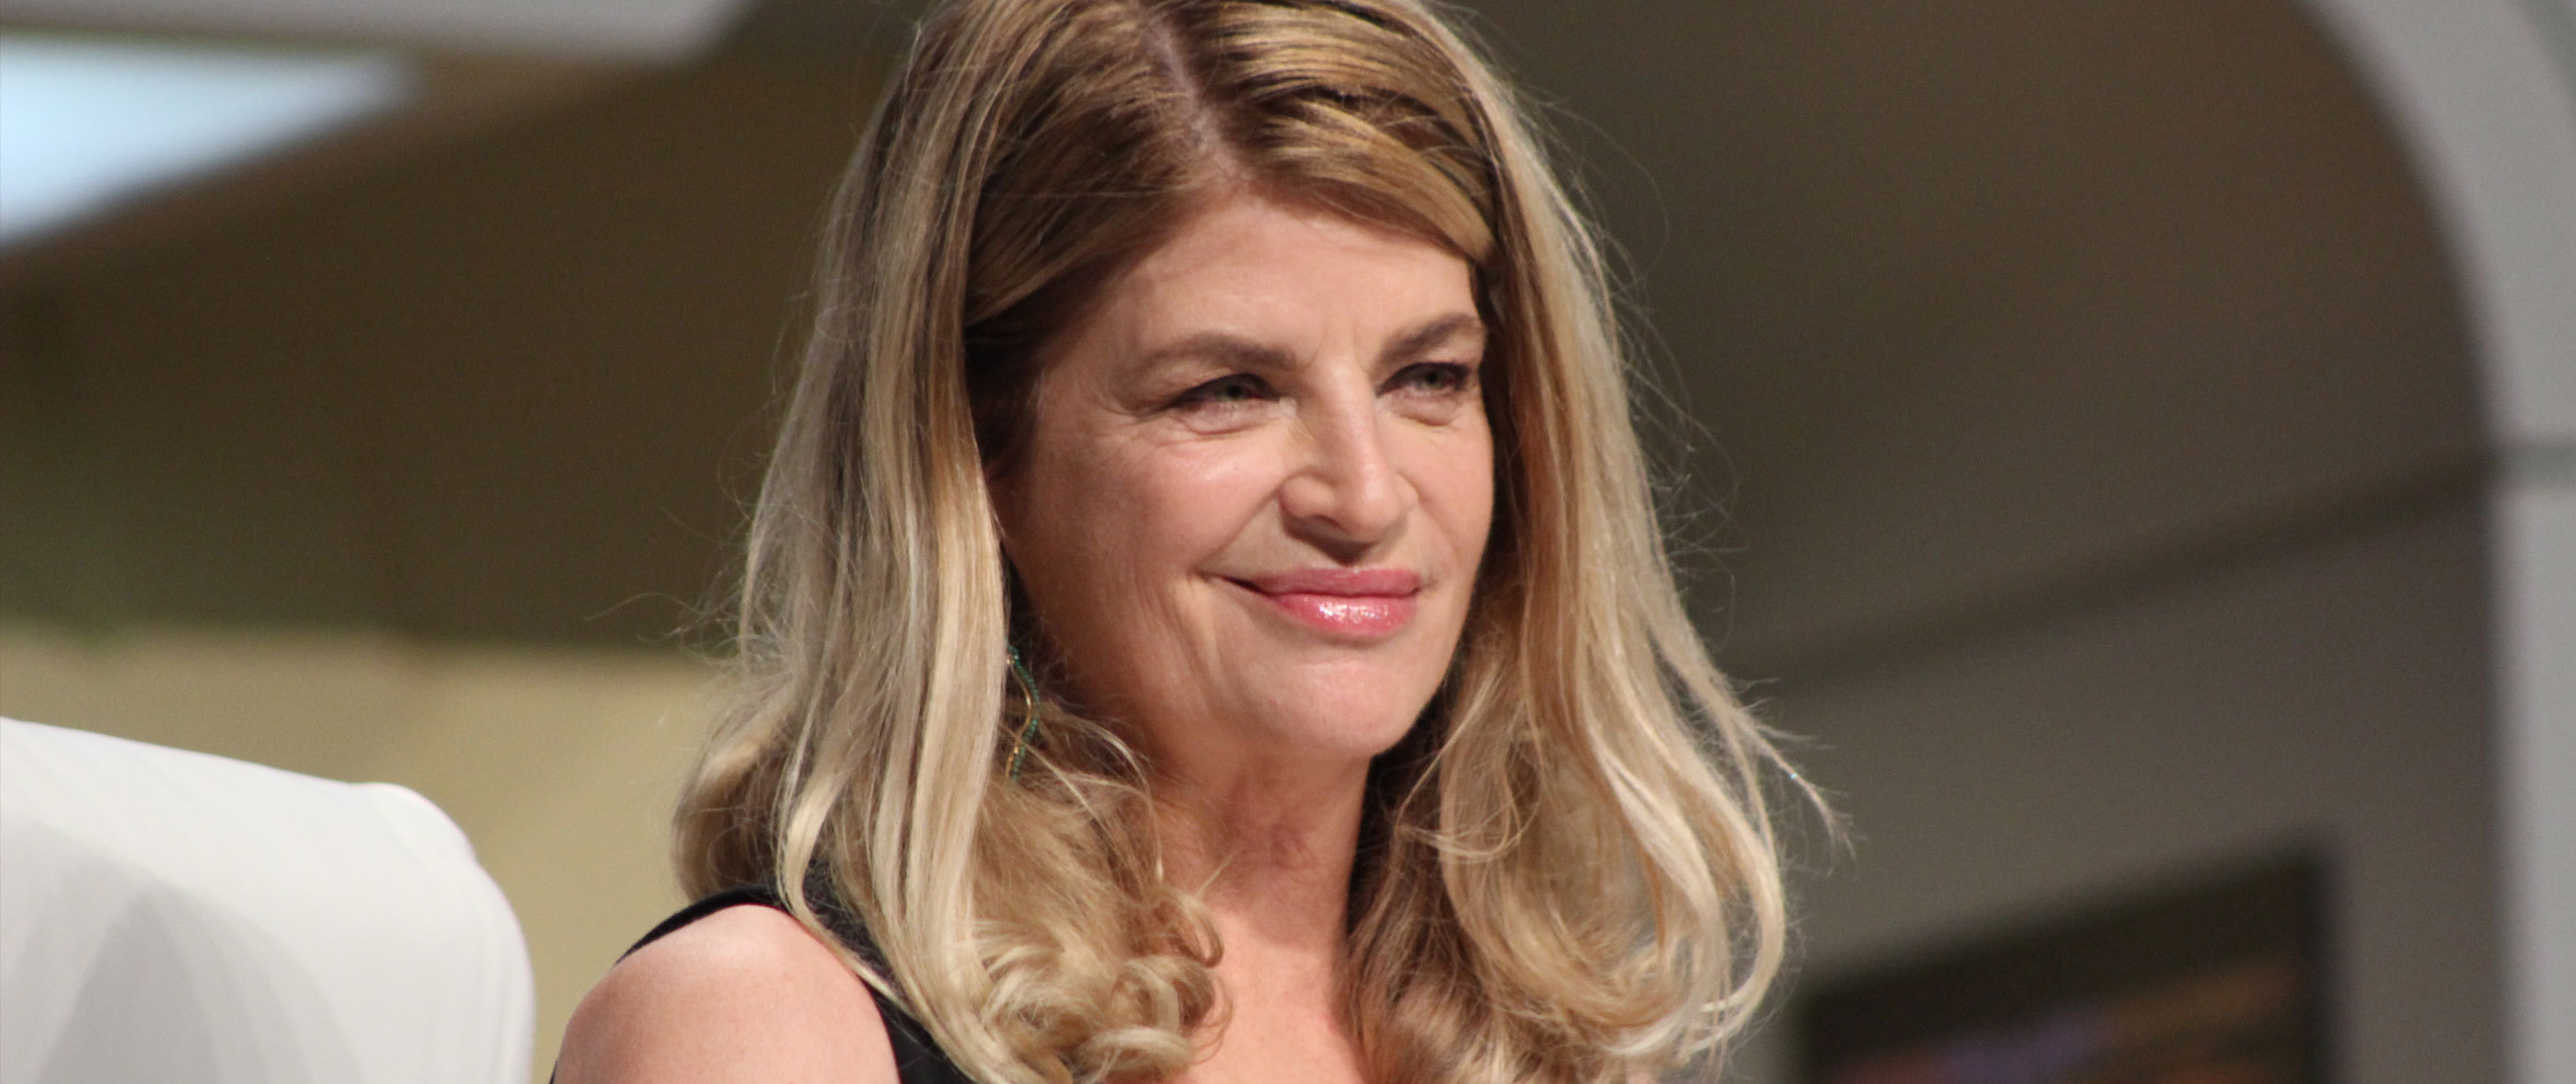 Pictures Of Kirstie Alley